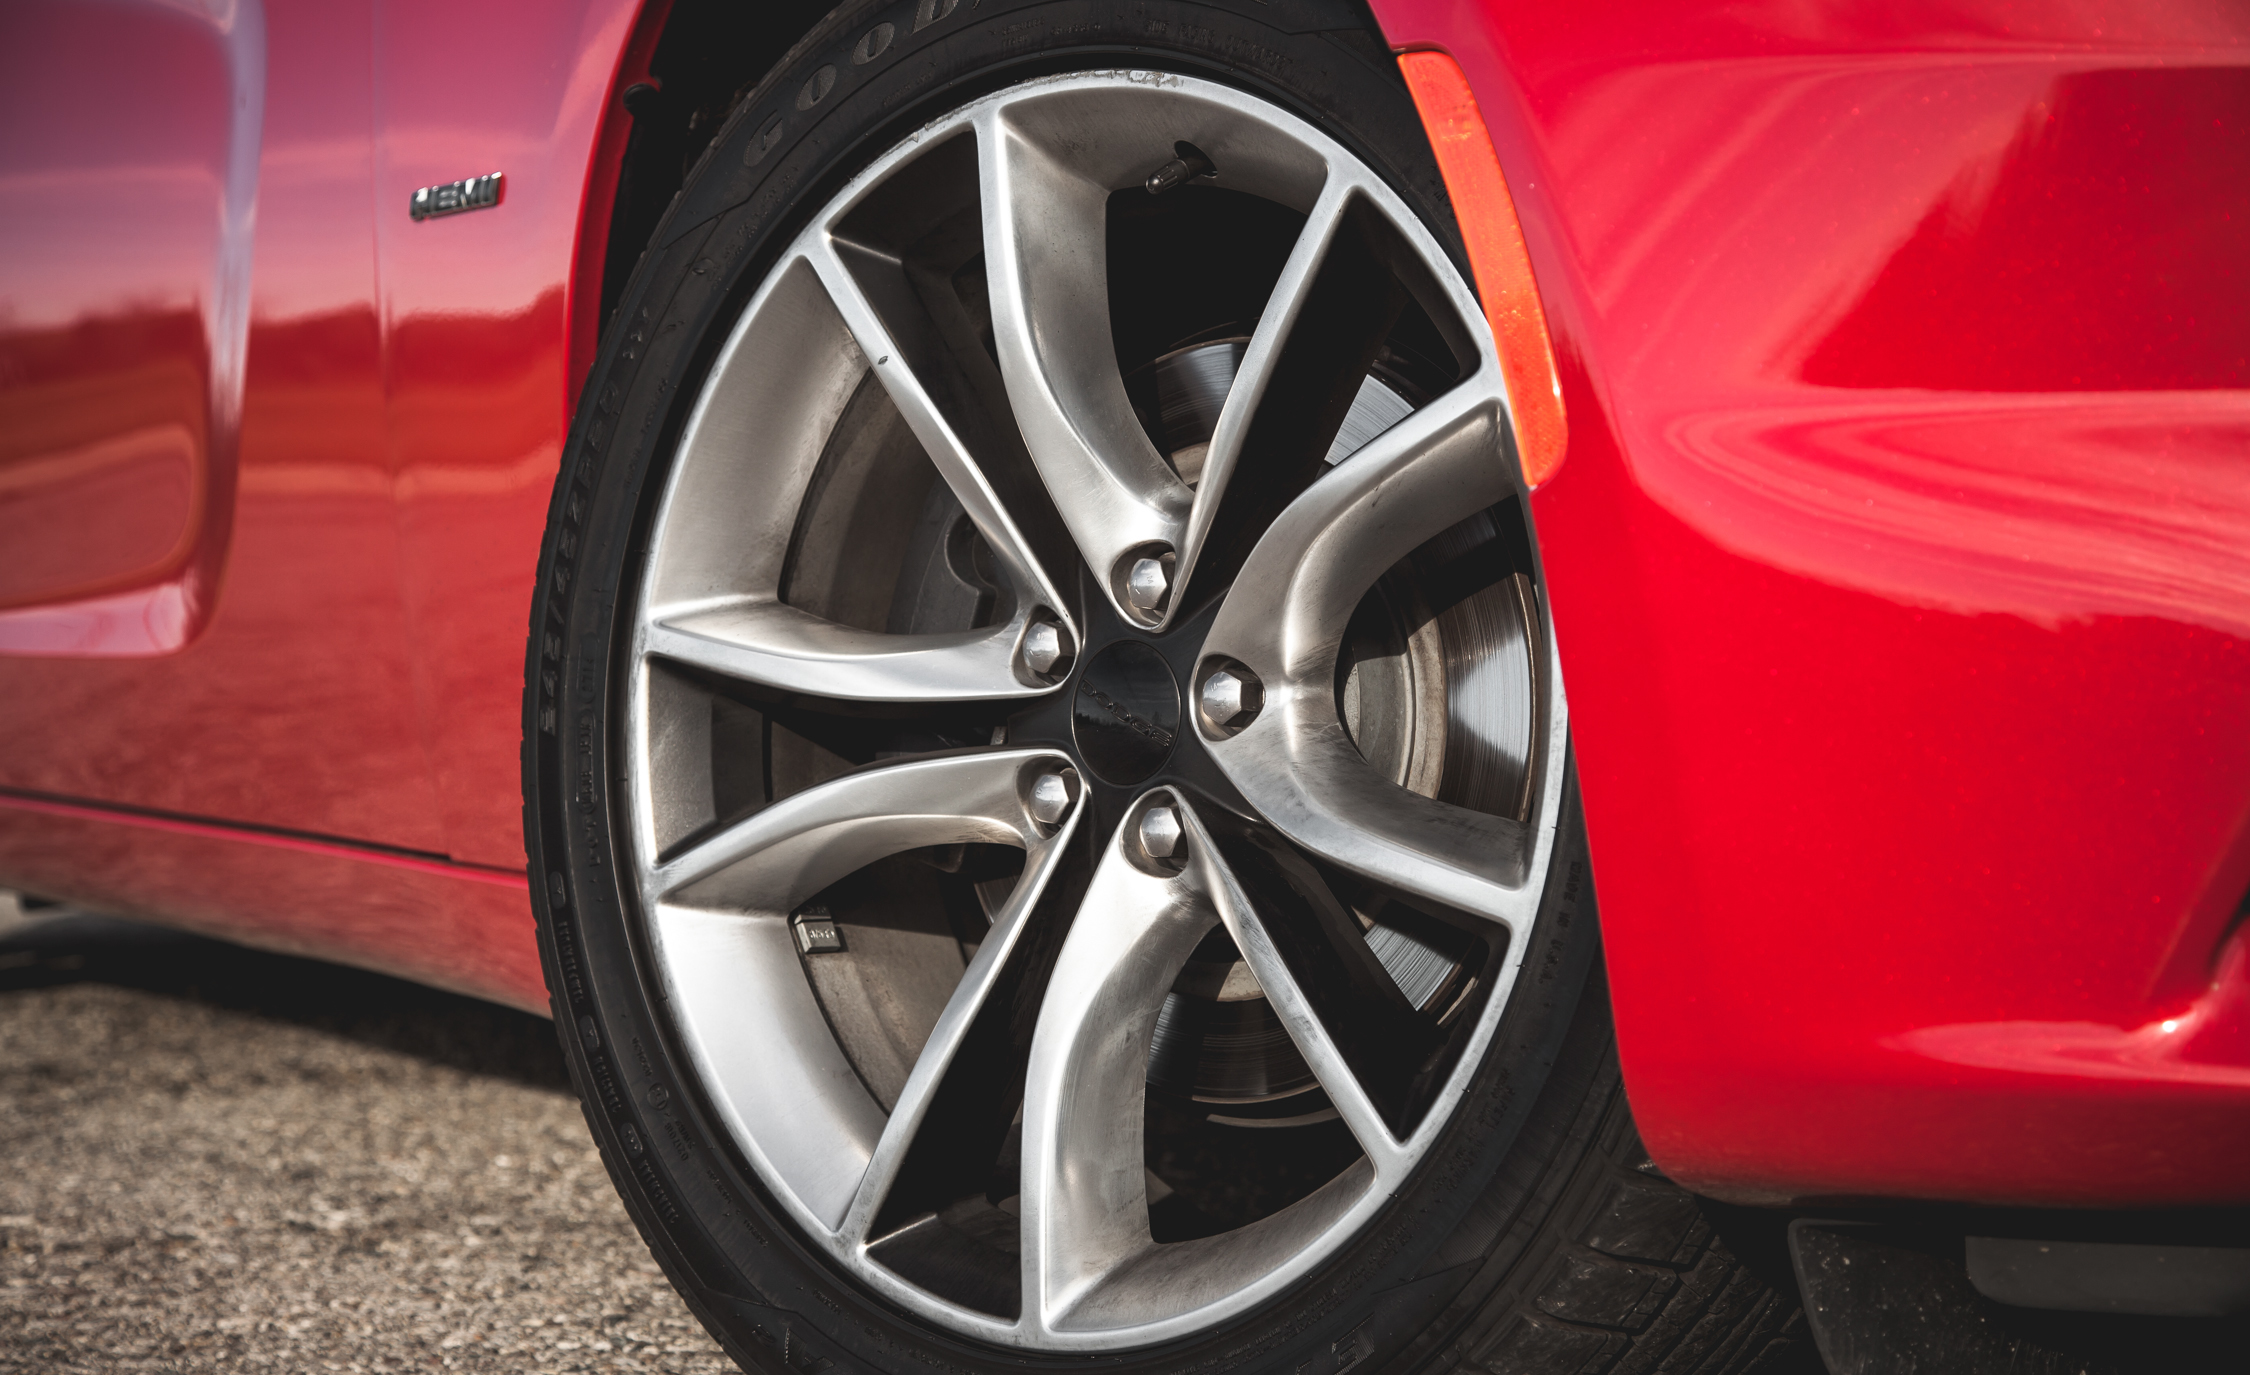 2015 dodge charger rt exterior wheel - Dodge Charger 2015 Exterior